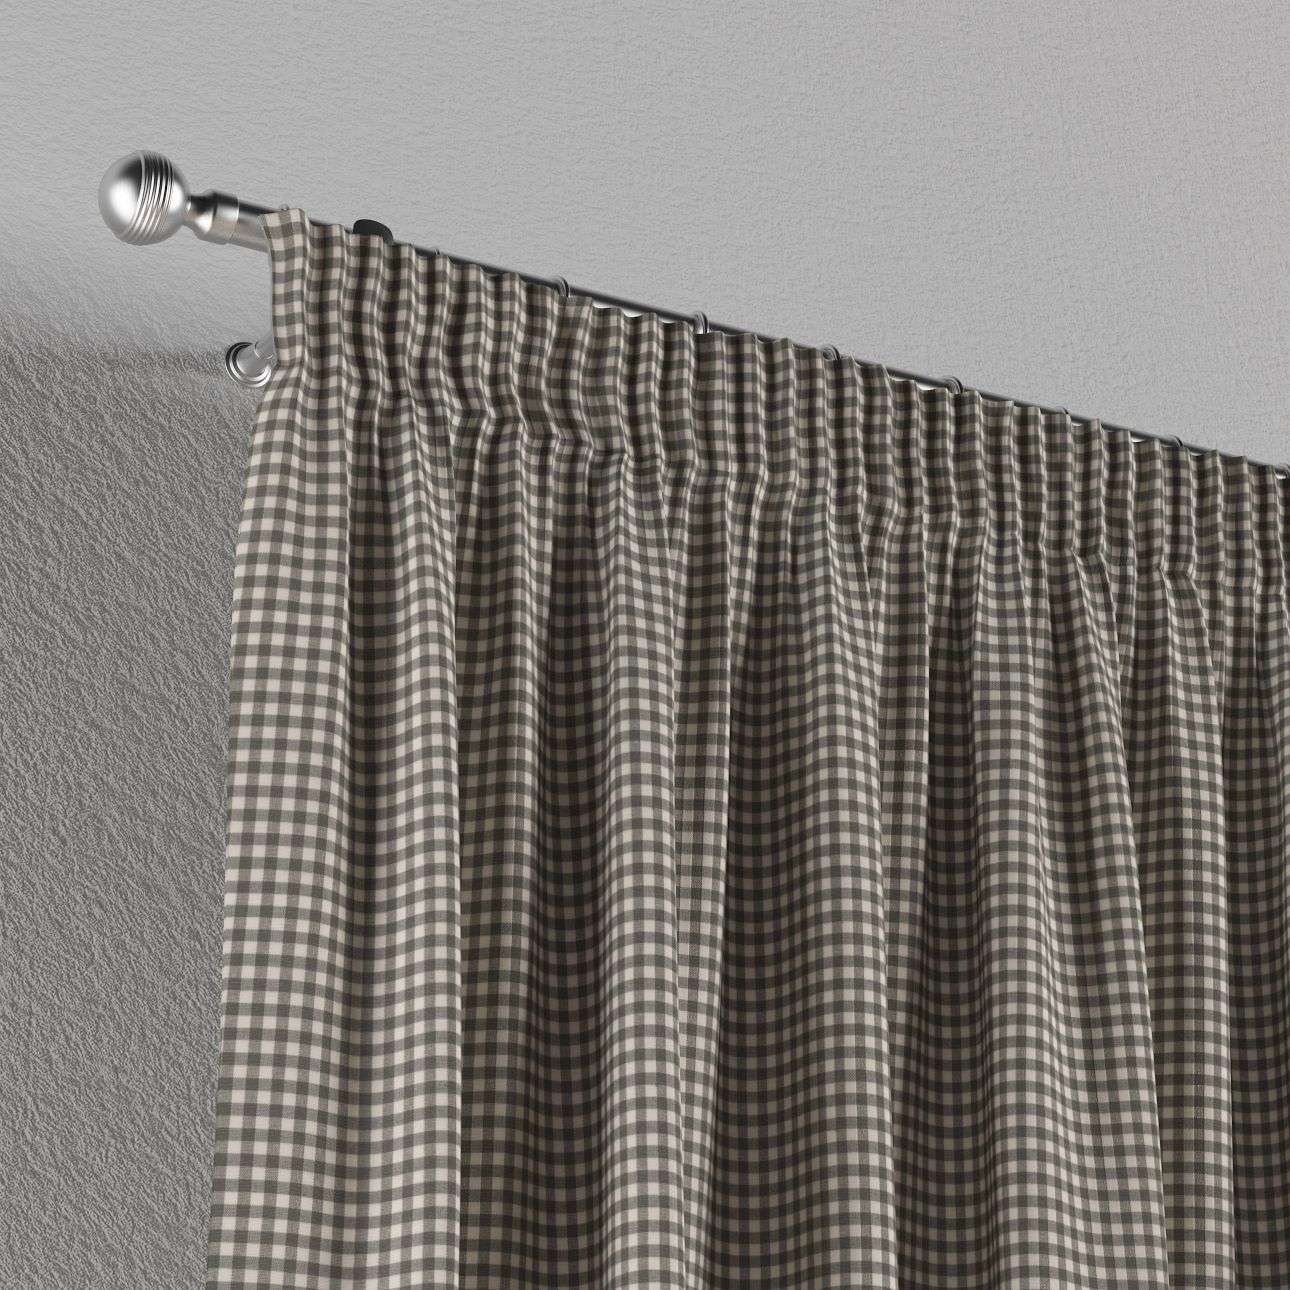 Pencil pleat curtains 130 x 260 cm (51 x 102 inch) in collection Quadro, fabric: 136-10